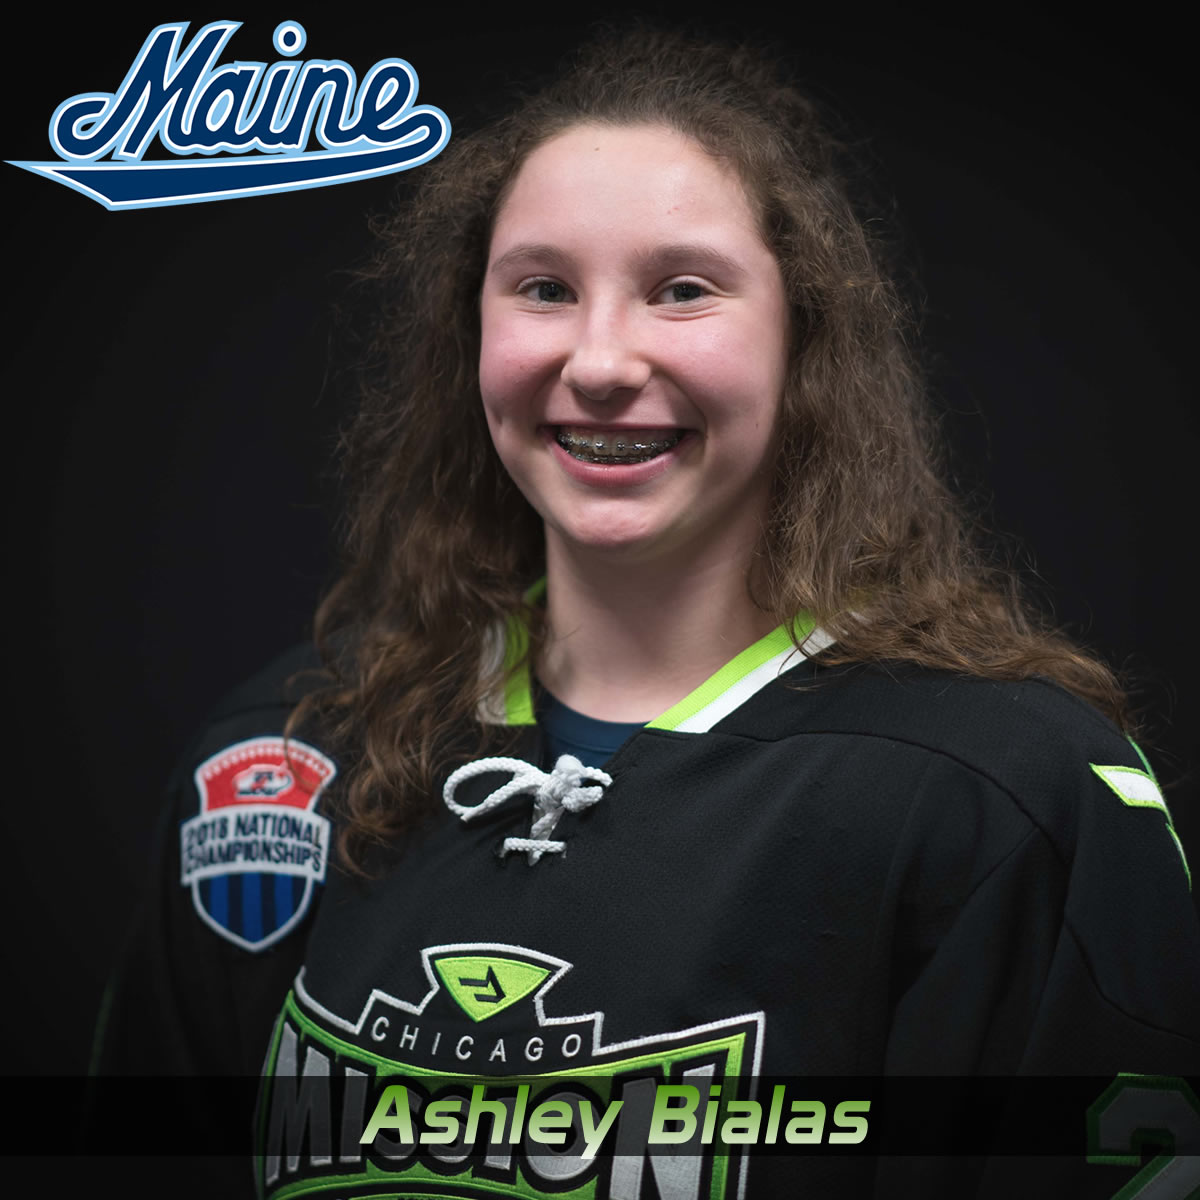 Ashley Bialas